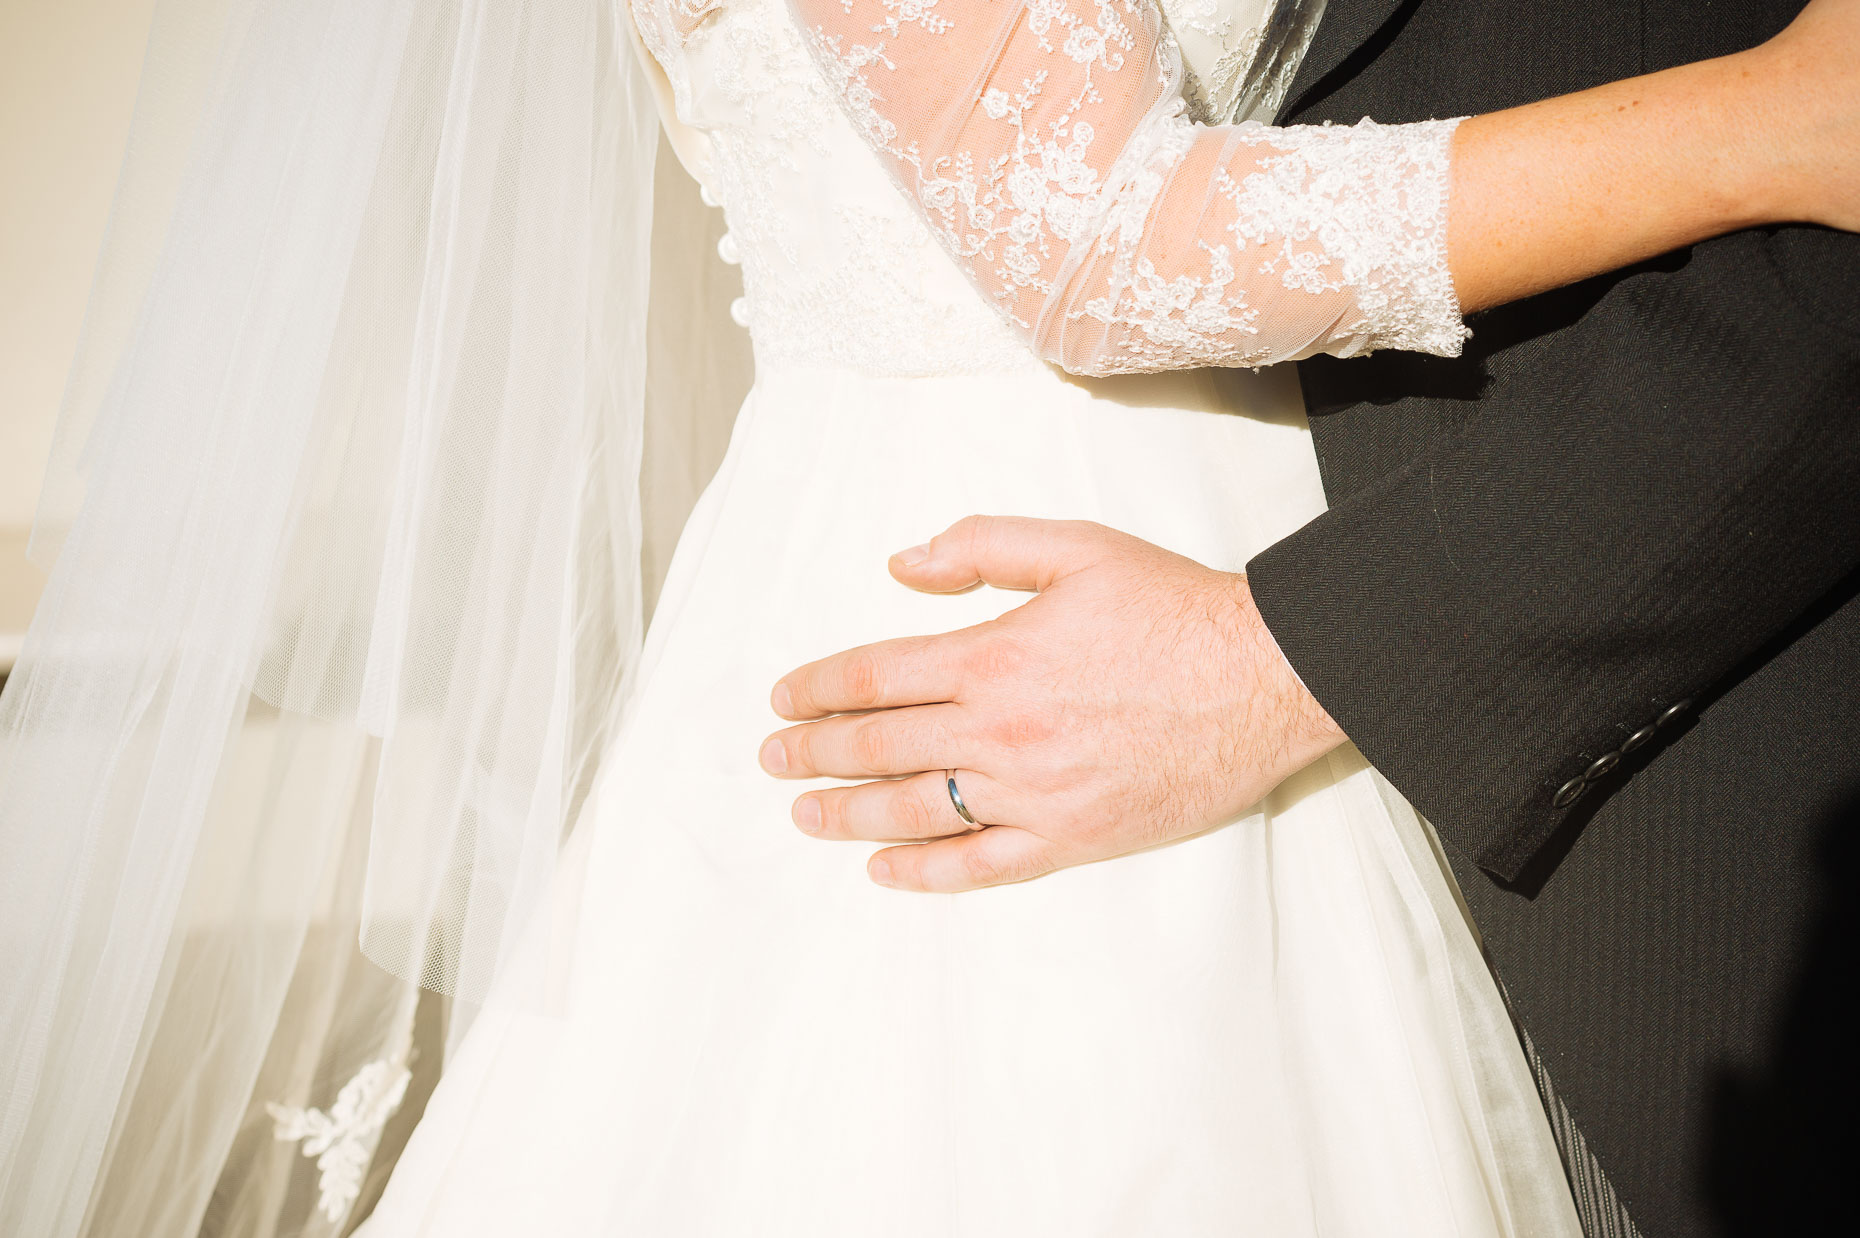 wedding-ring-groom-hand-on-dress-belgrave-square-garden-london-15